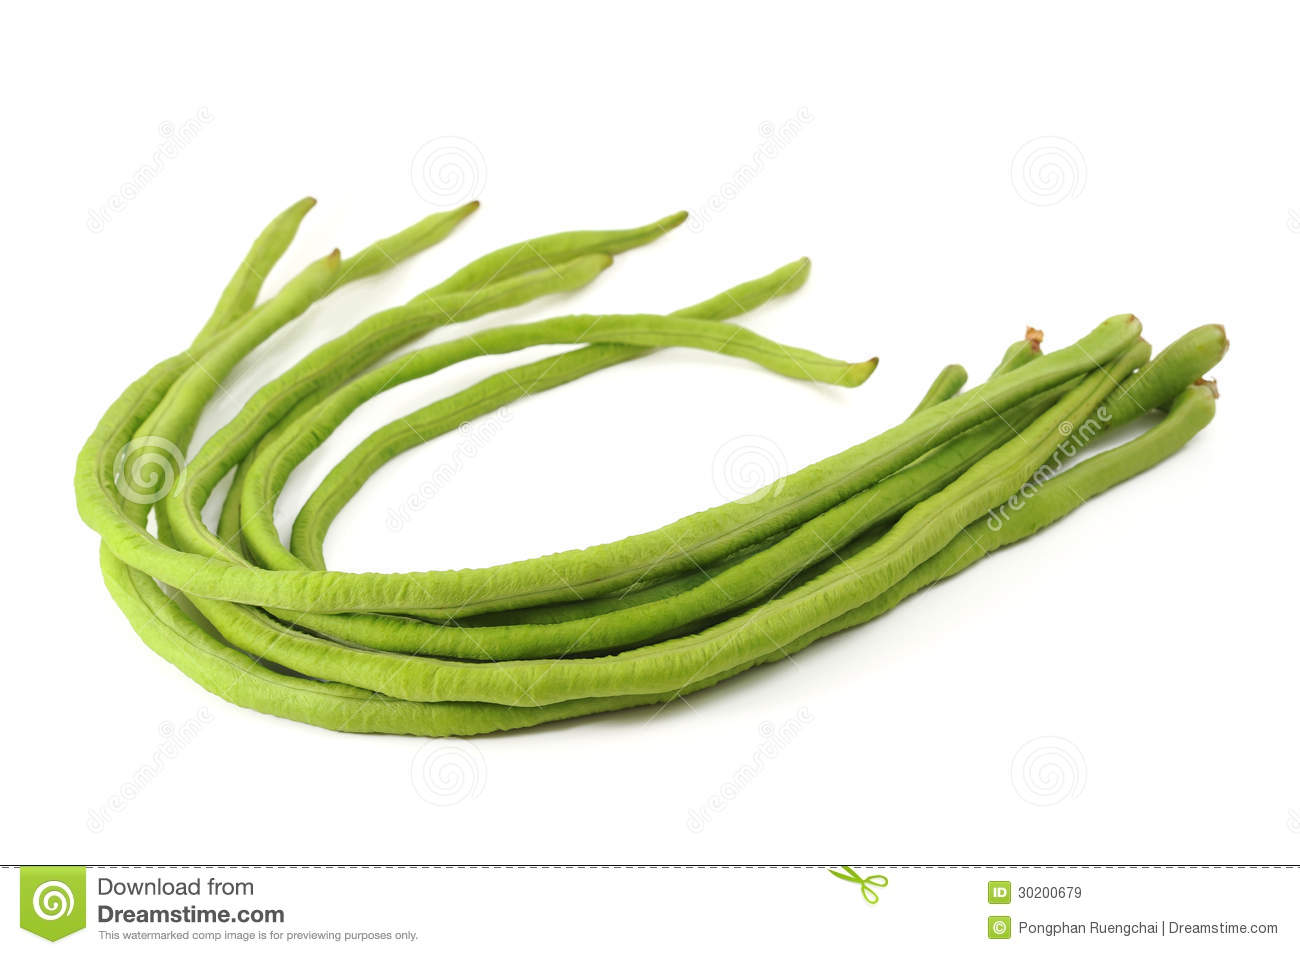 Pencil and in color. Beans clipart long bean